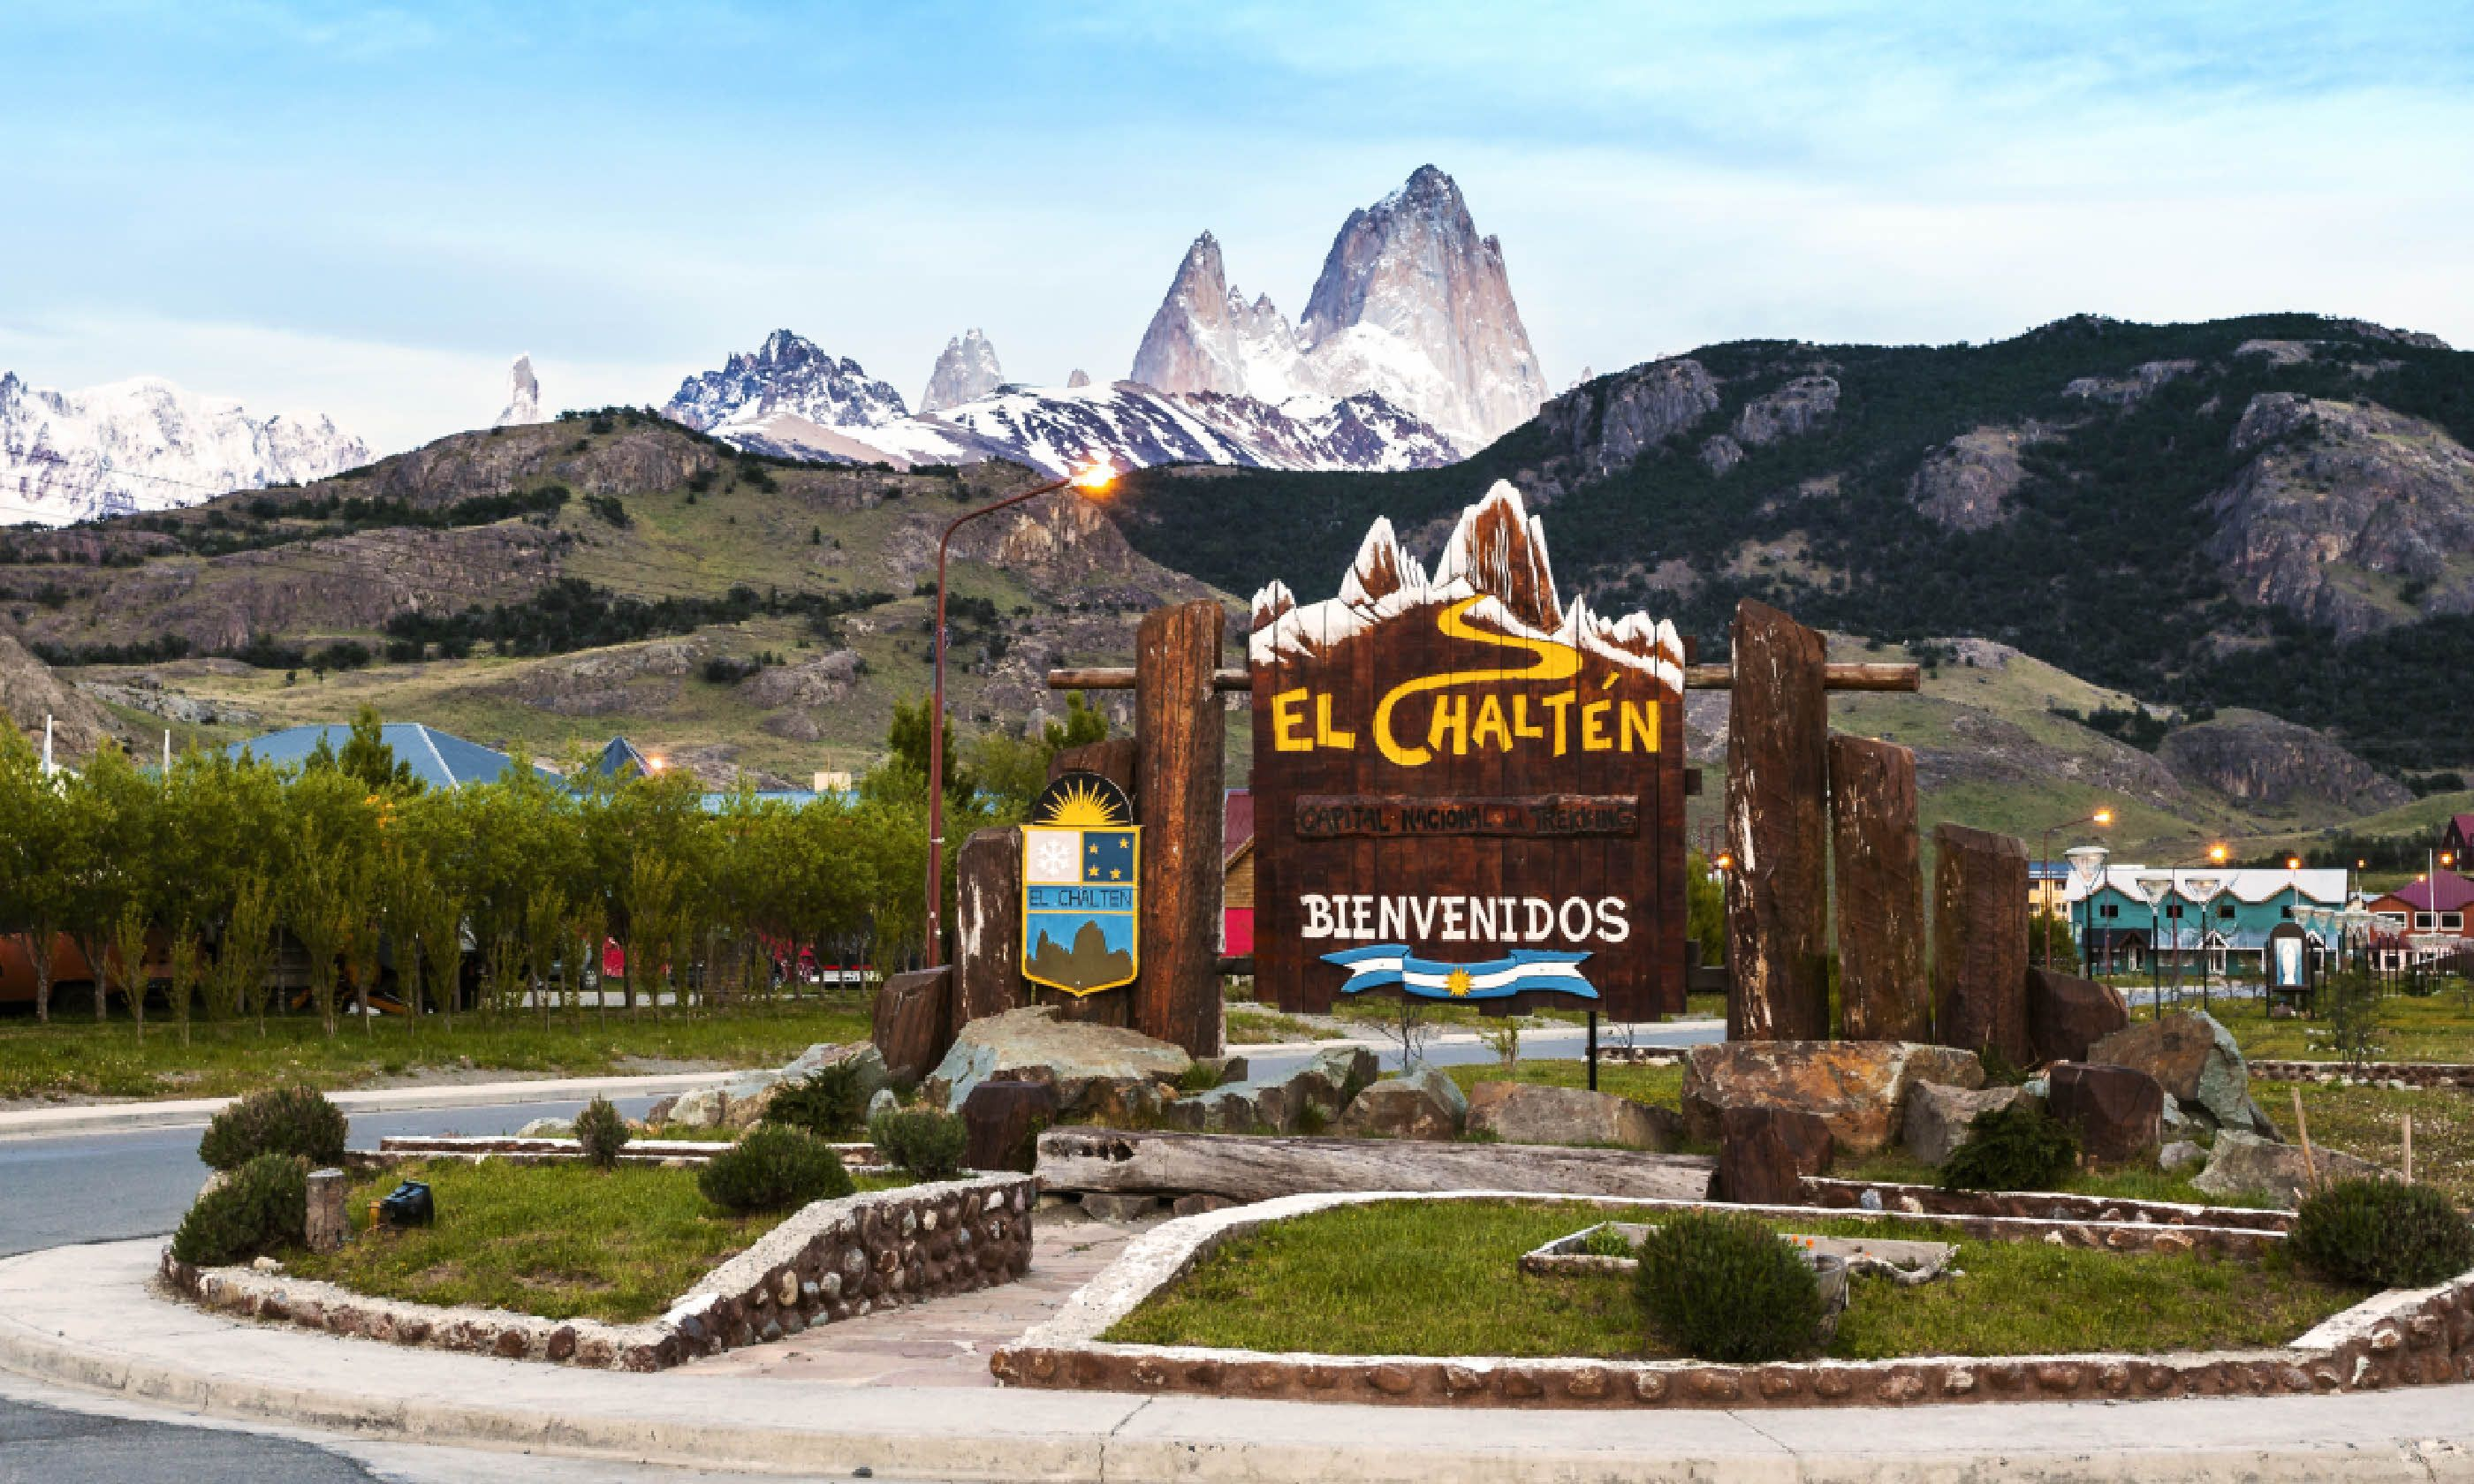 Welcome to El Chalten village sign with Fitz Roy mountain range in background (Dreamstime)